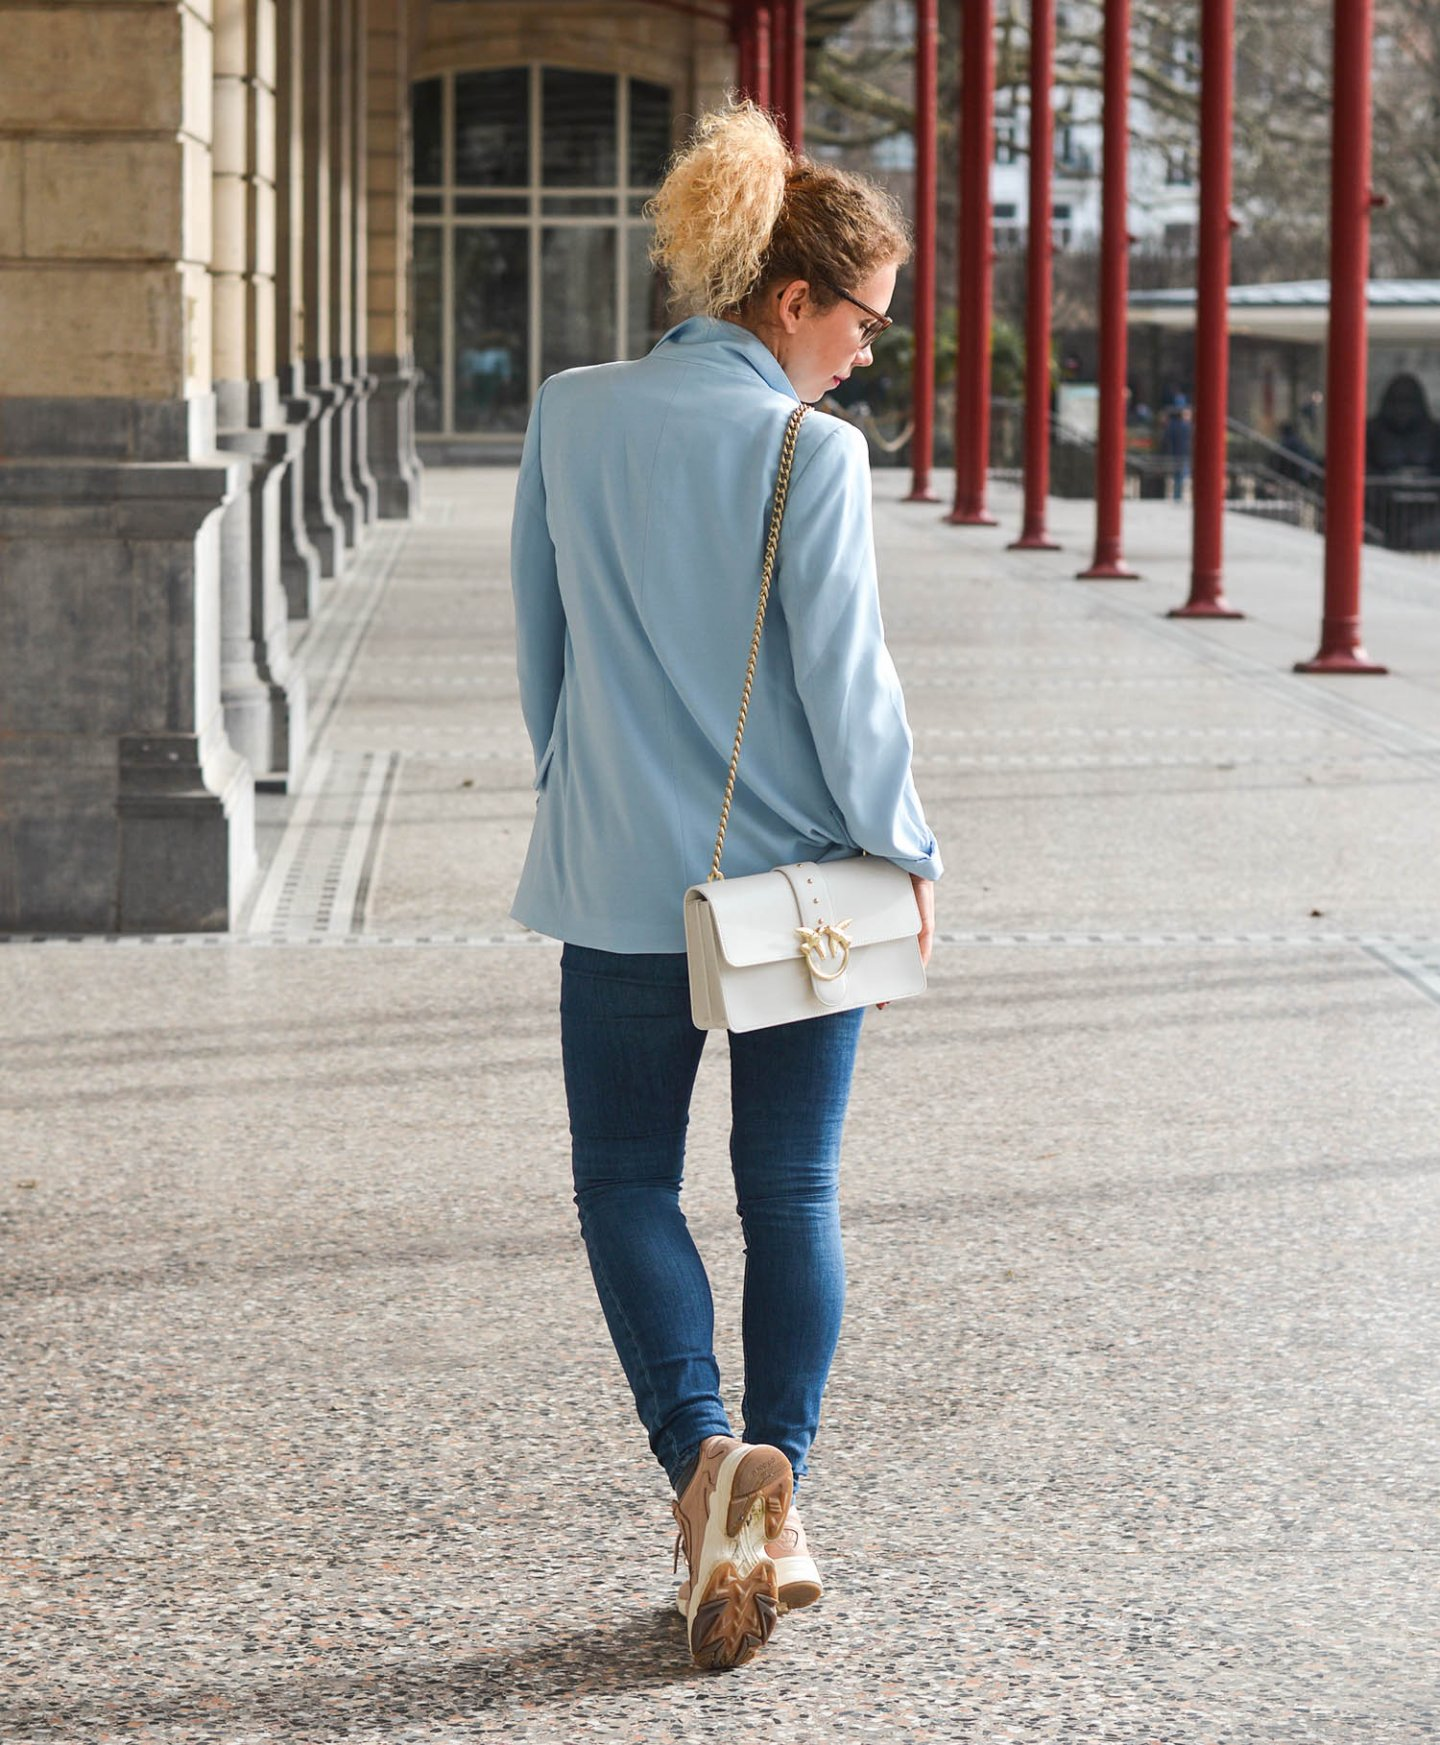 Denim-Look-Blazer-Haarspange-Chunky-Sneakers-Kationette-Fashionblog-Germany-Frühlingslook